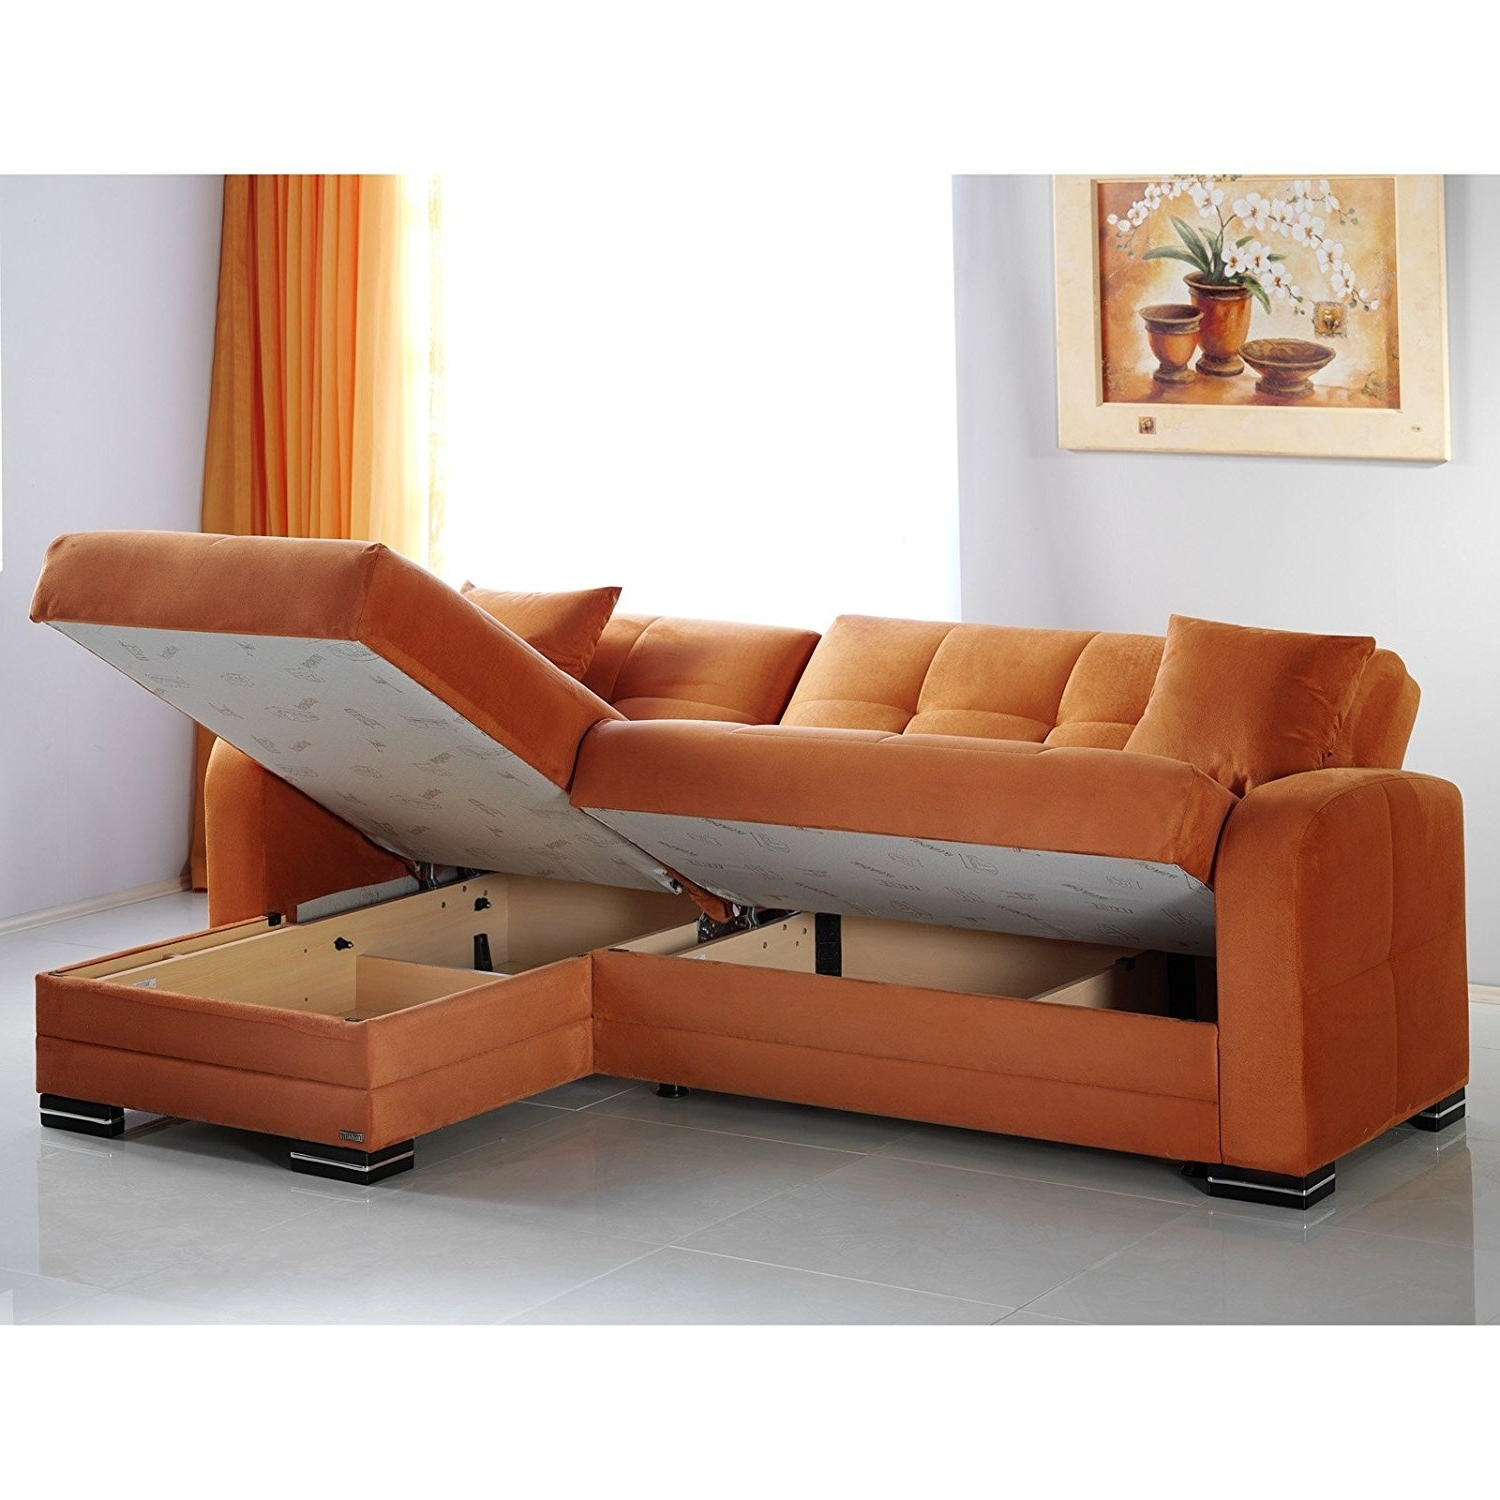 Amazon: Kubo Rainbow Orange Sectional Sofa: Kitchen & Dining Within Favorite Orange Sectional Sofas (View 6 of 15)